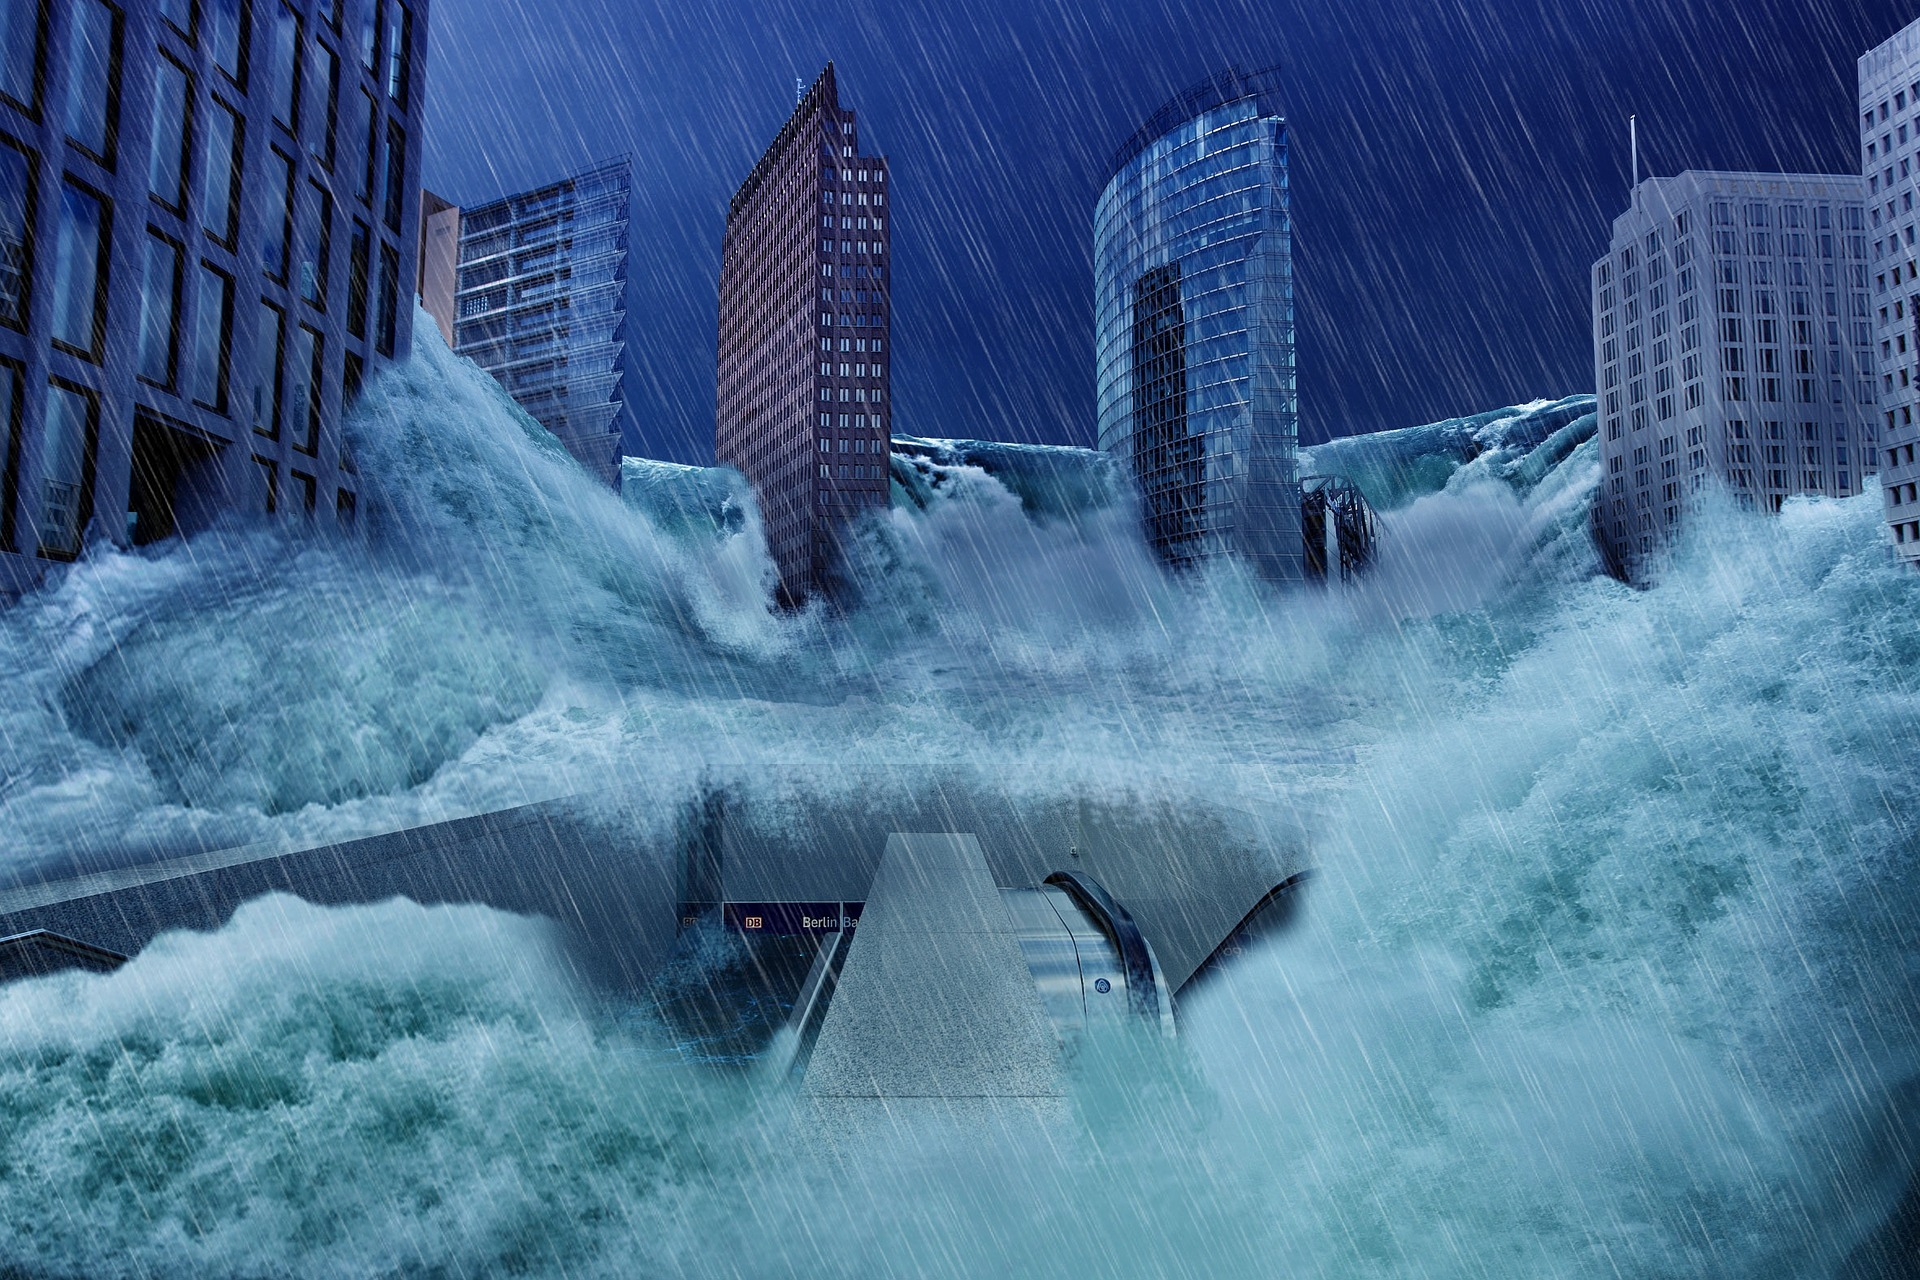 Berlin as Imagined During A Flood